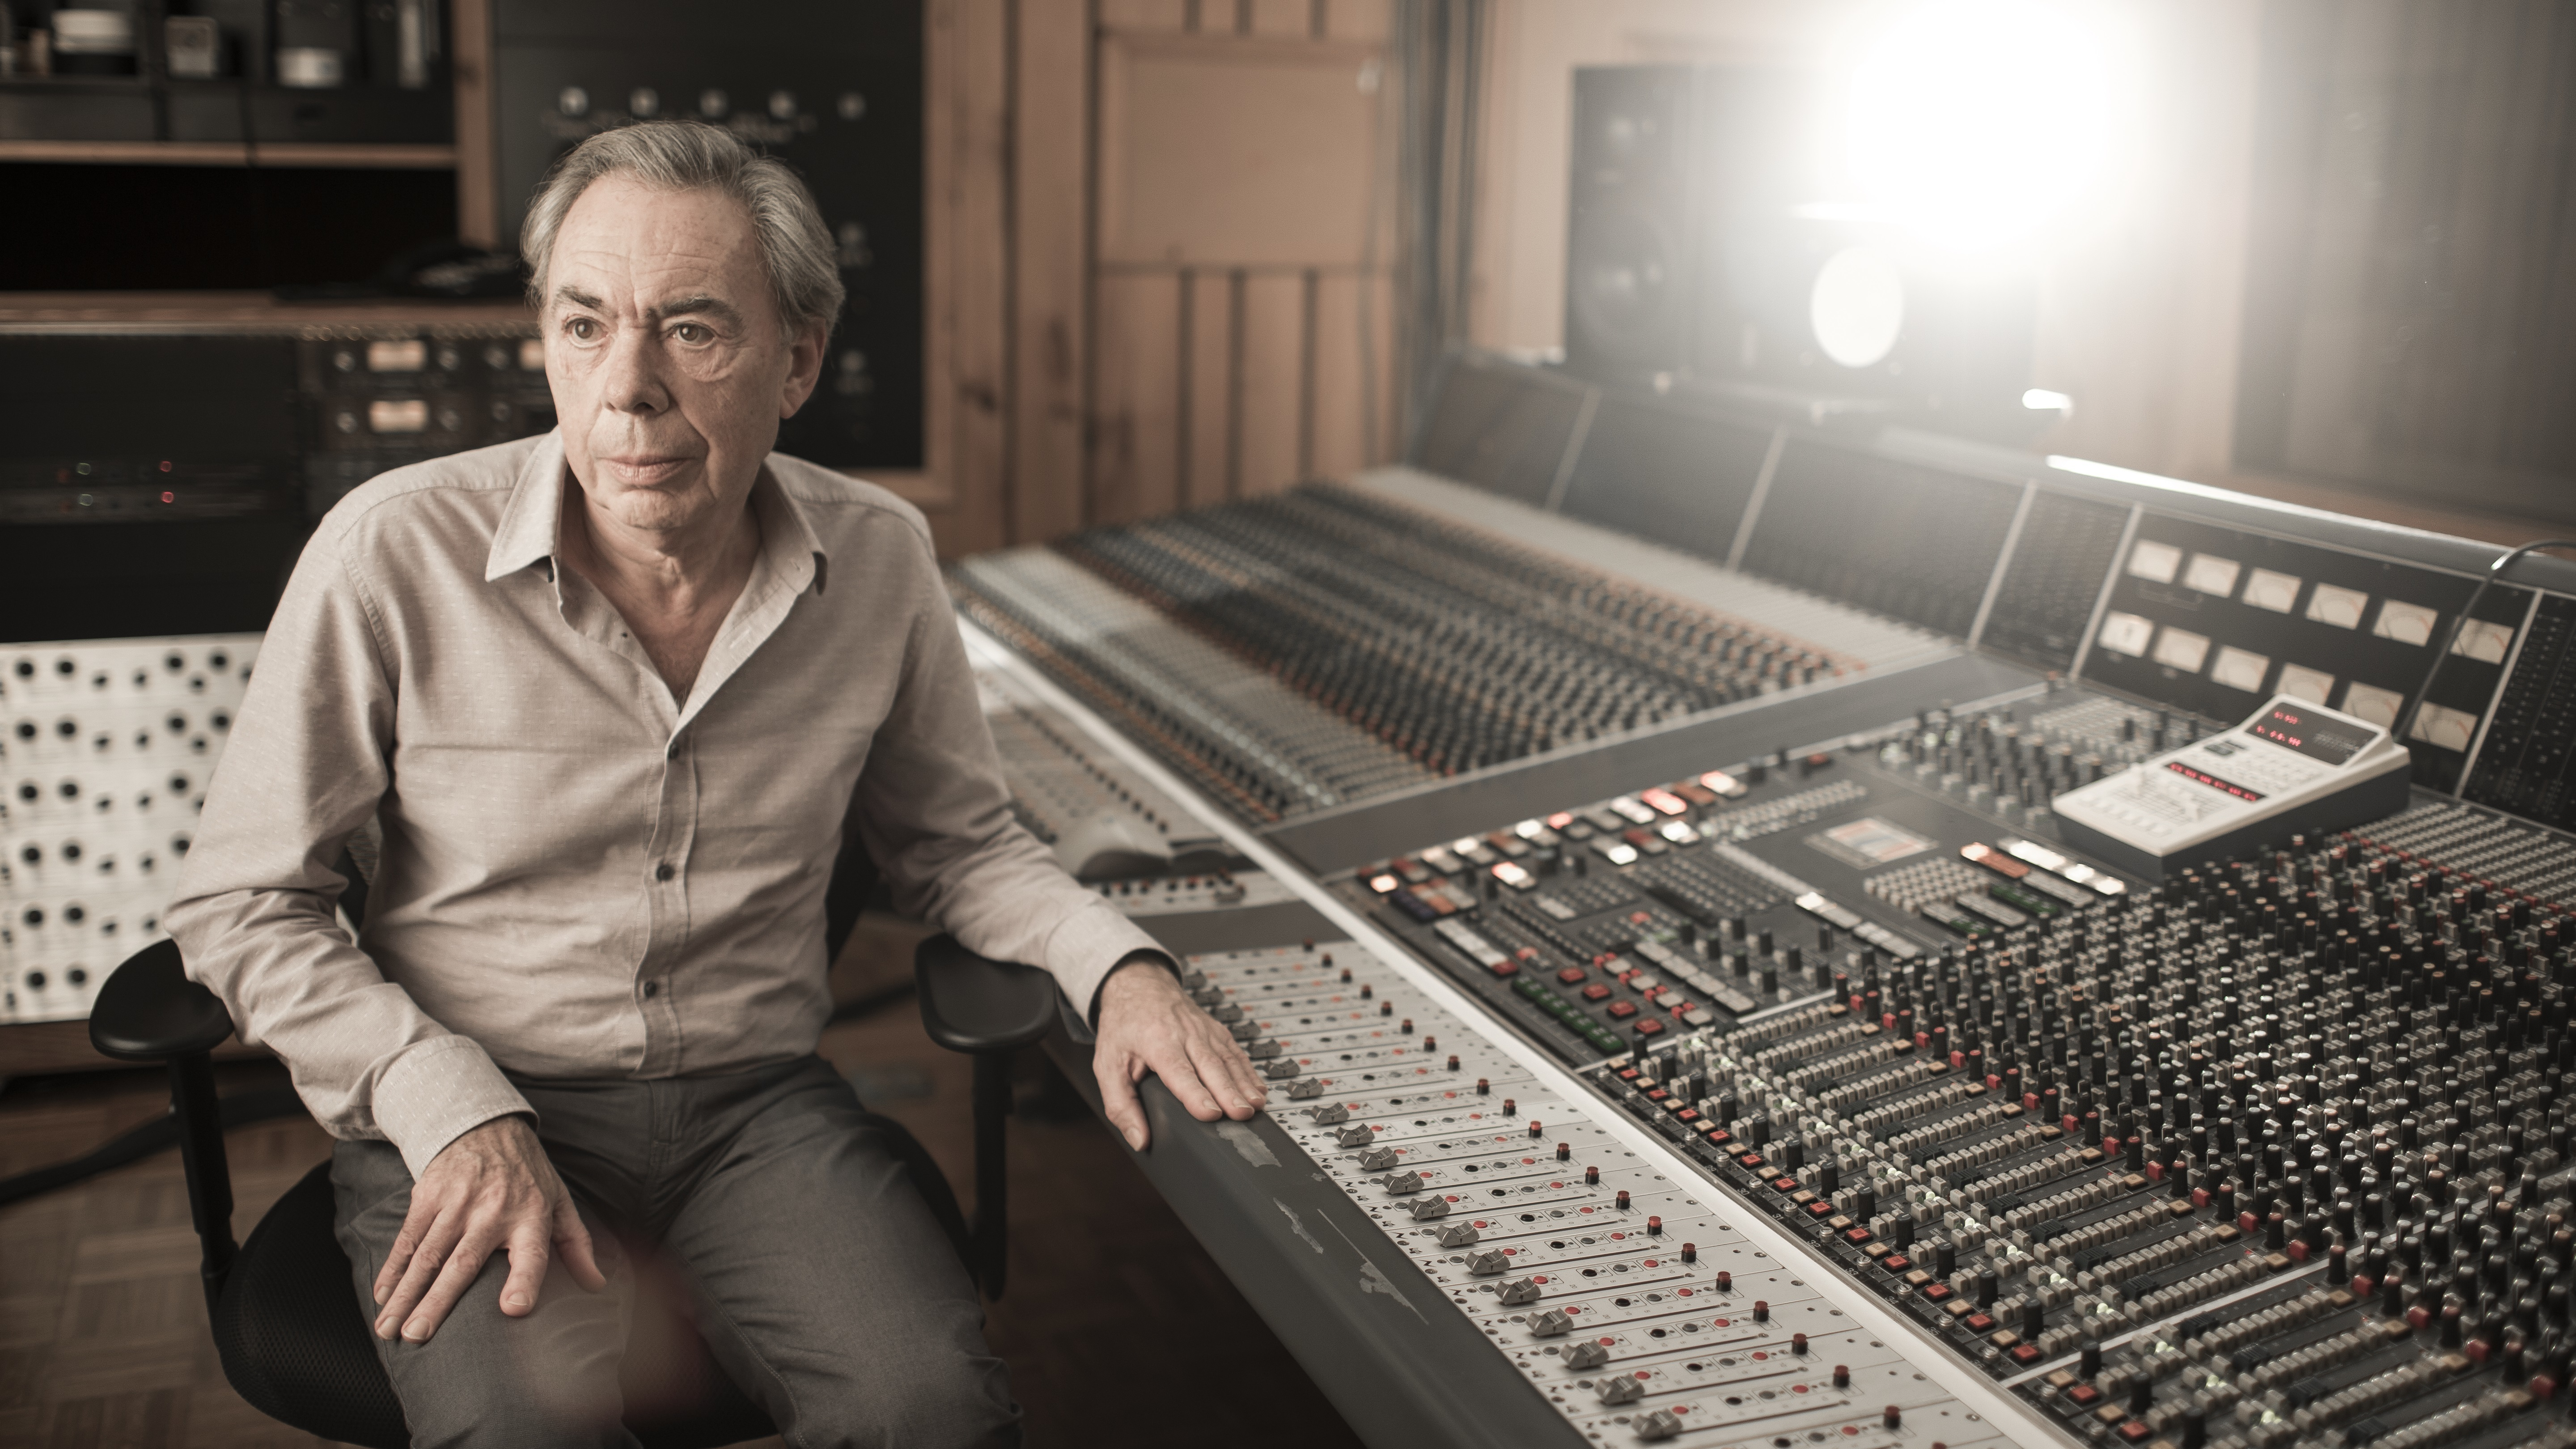 Andrew Lloyd Webber's new memoir, Unmasked, covers the composer's life and creative process.